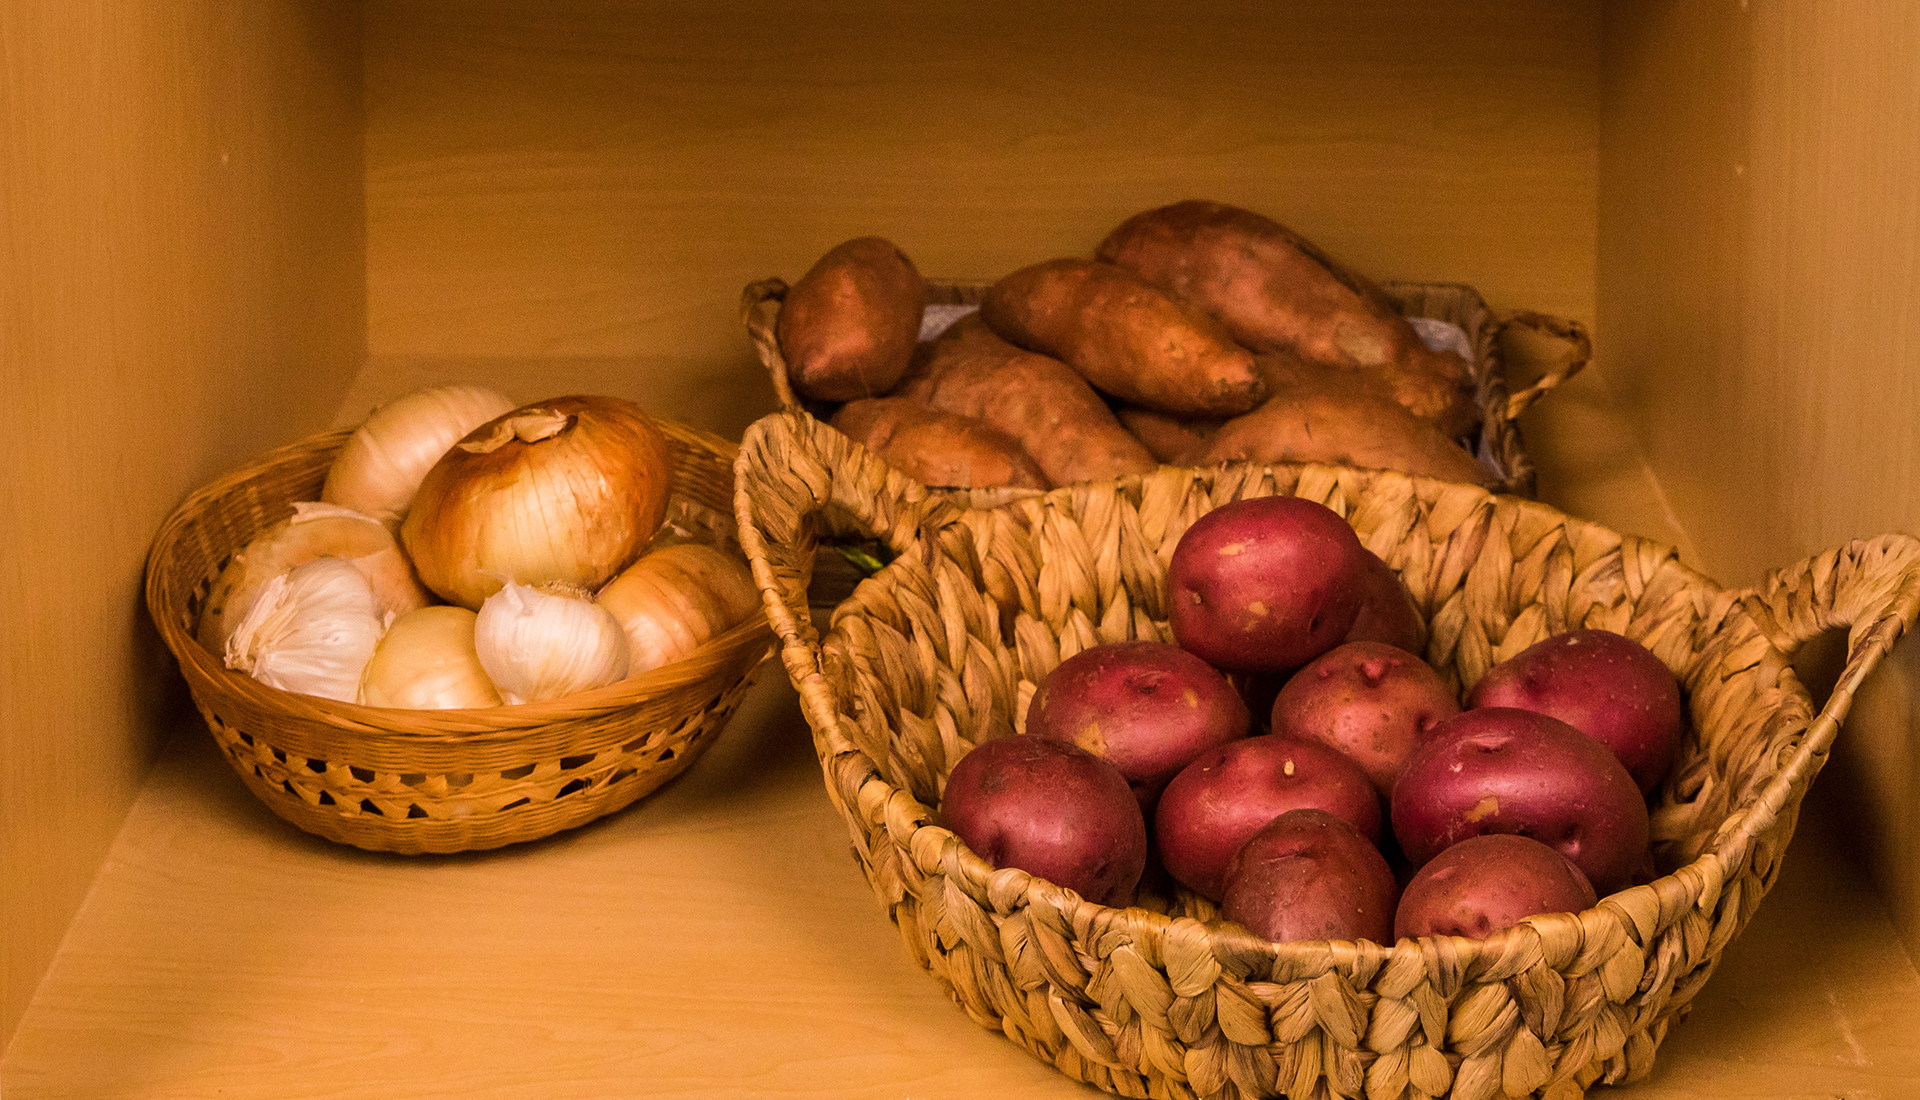 baskets of onions and potatoes in pantry.